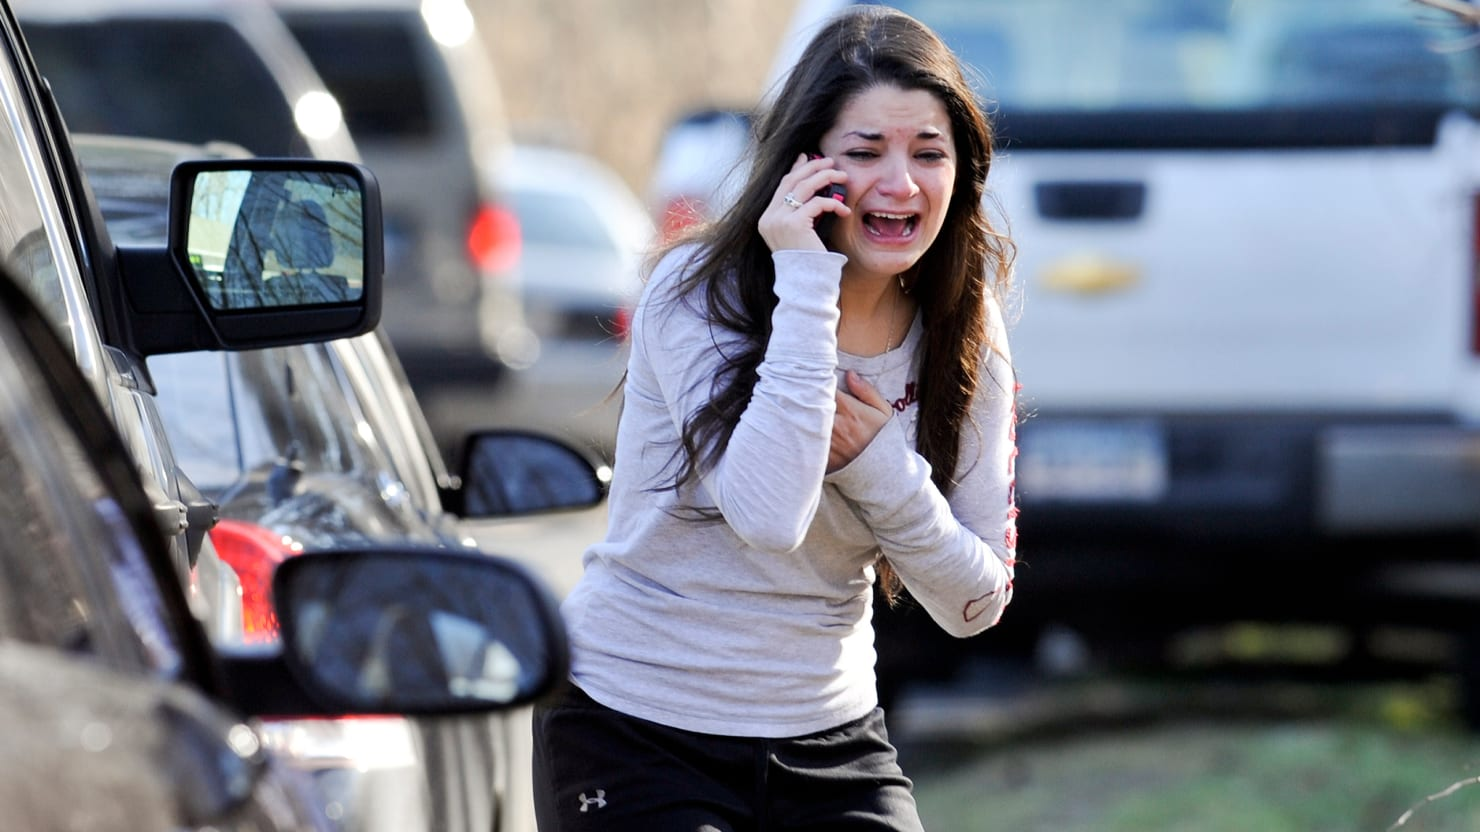 Newtown 911 Calls Released: Hear the Chilling Audio